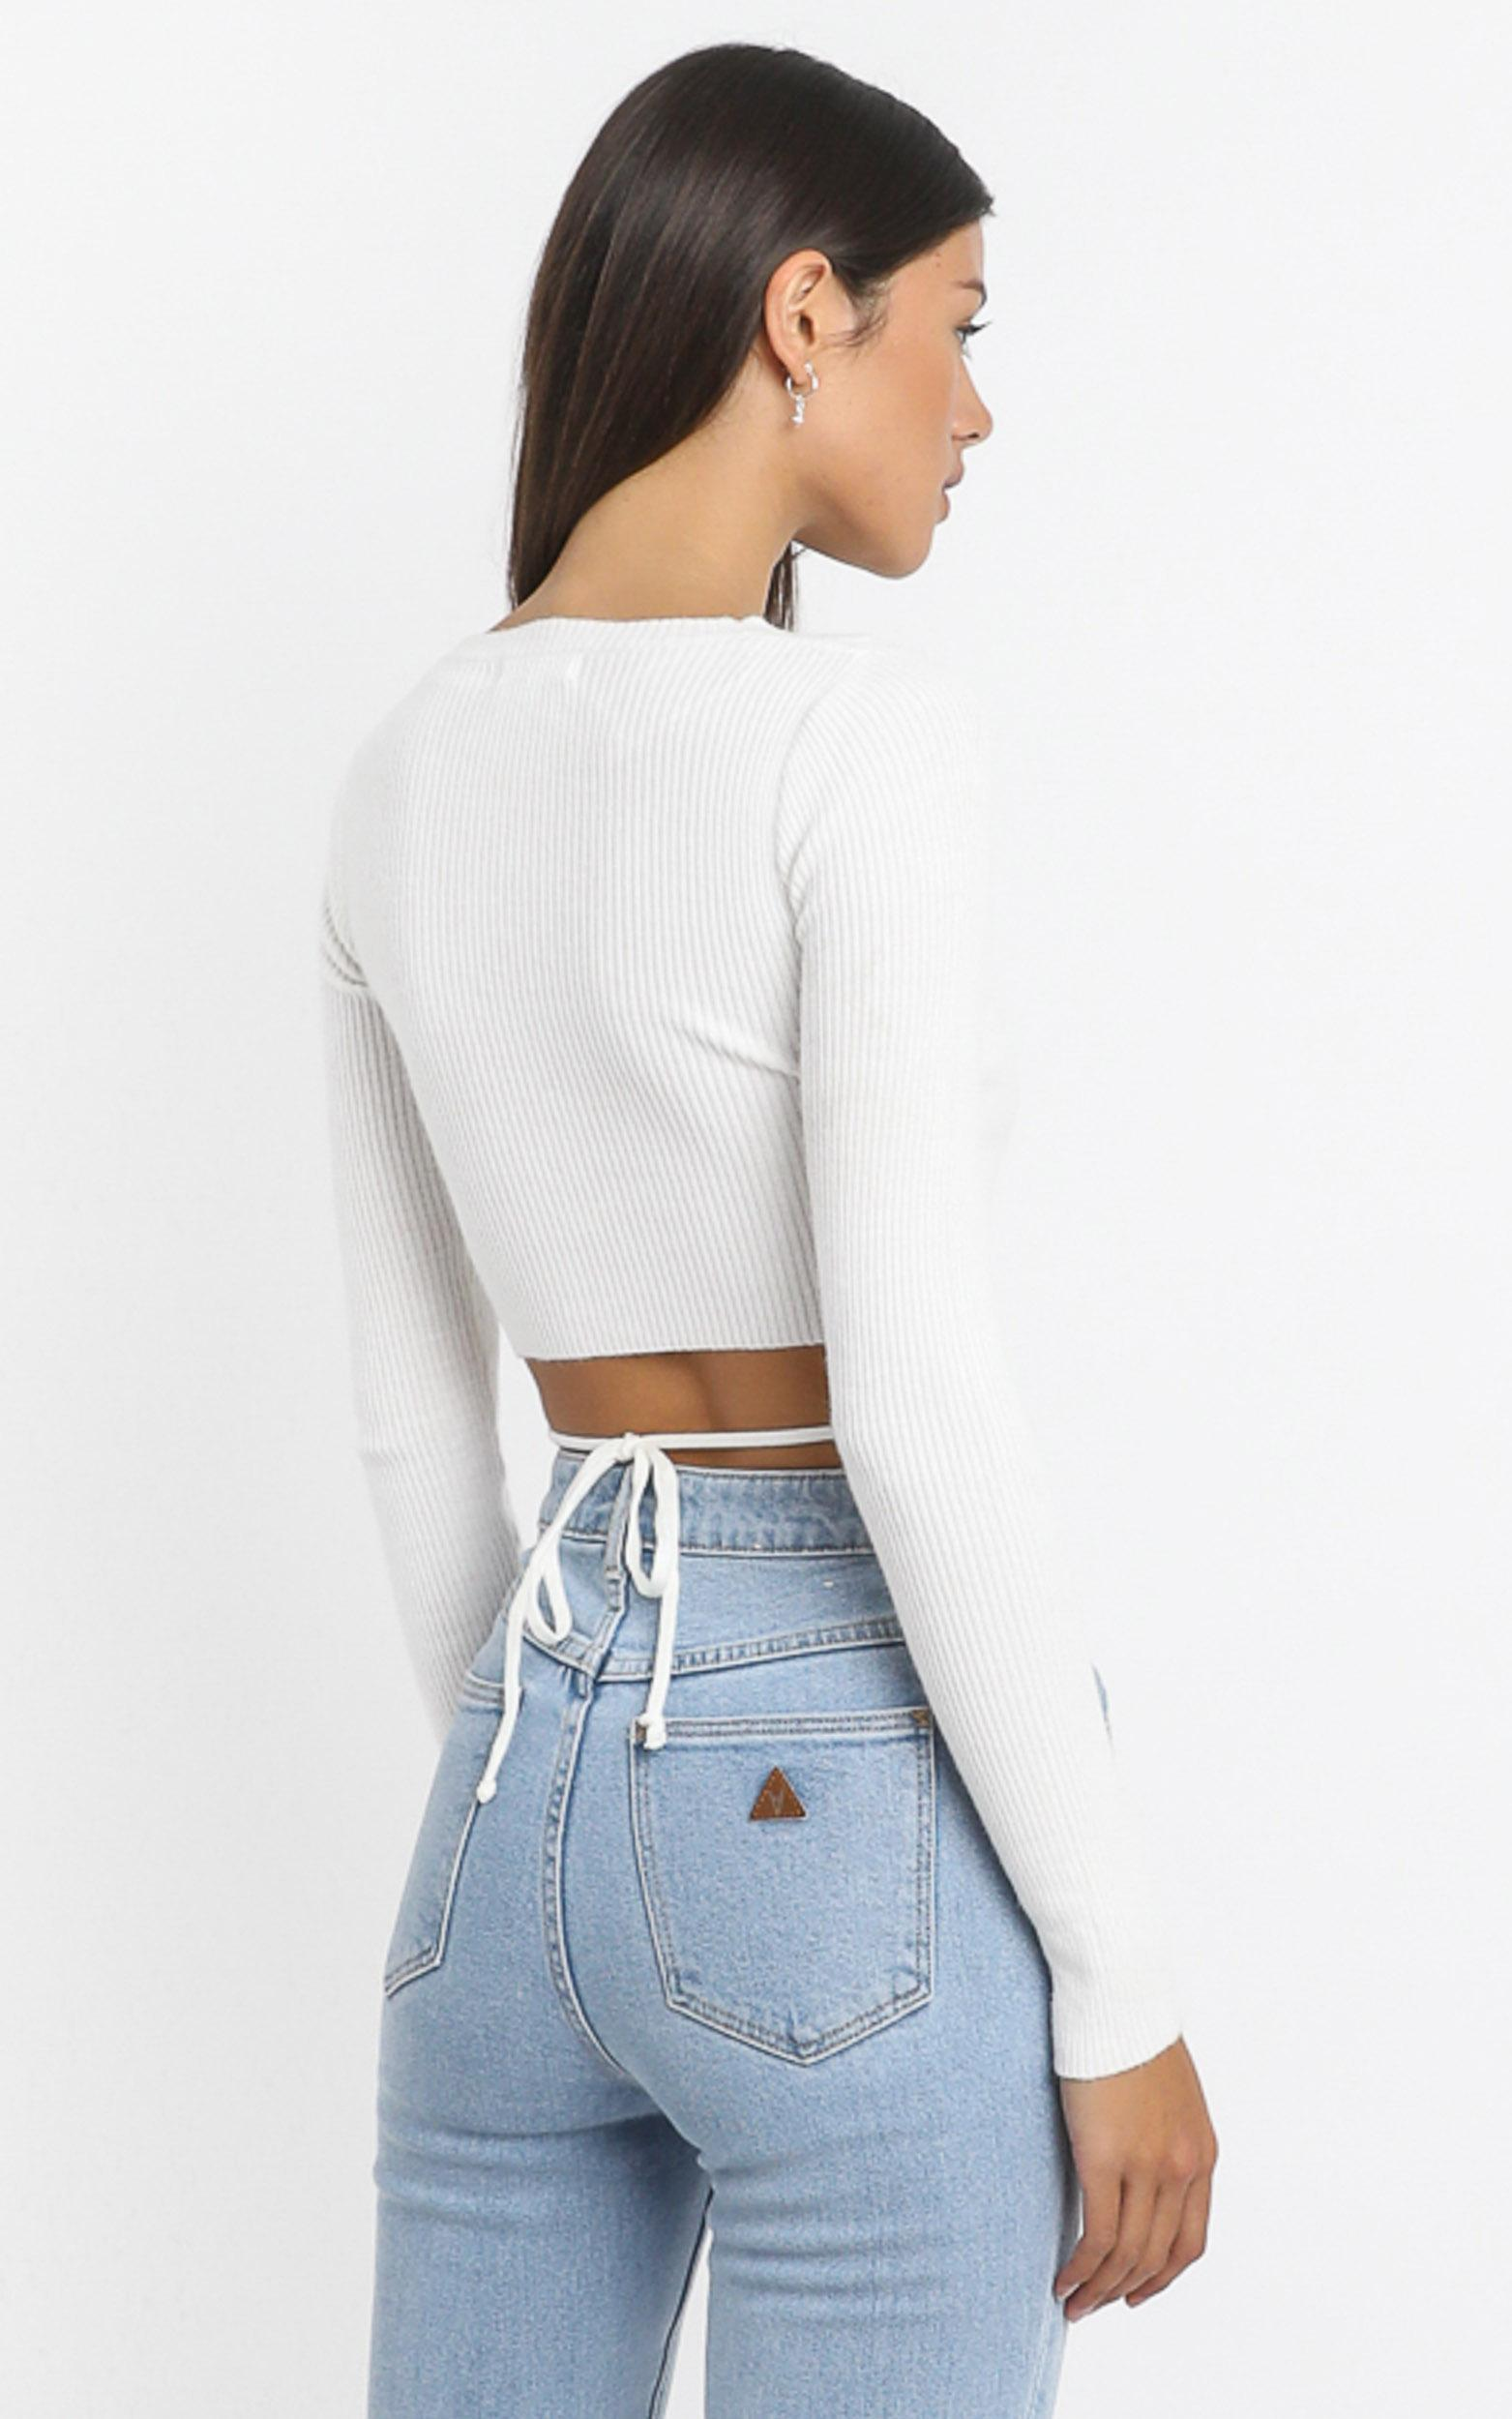 Drystan Knit Top in White - 8 (S), White, hi-res image number null